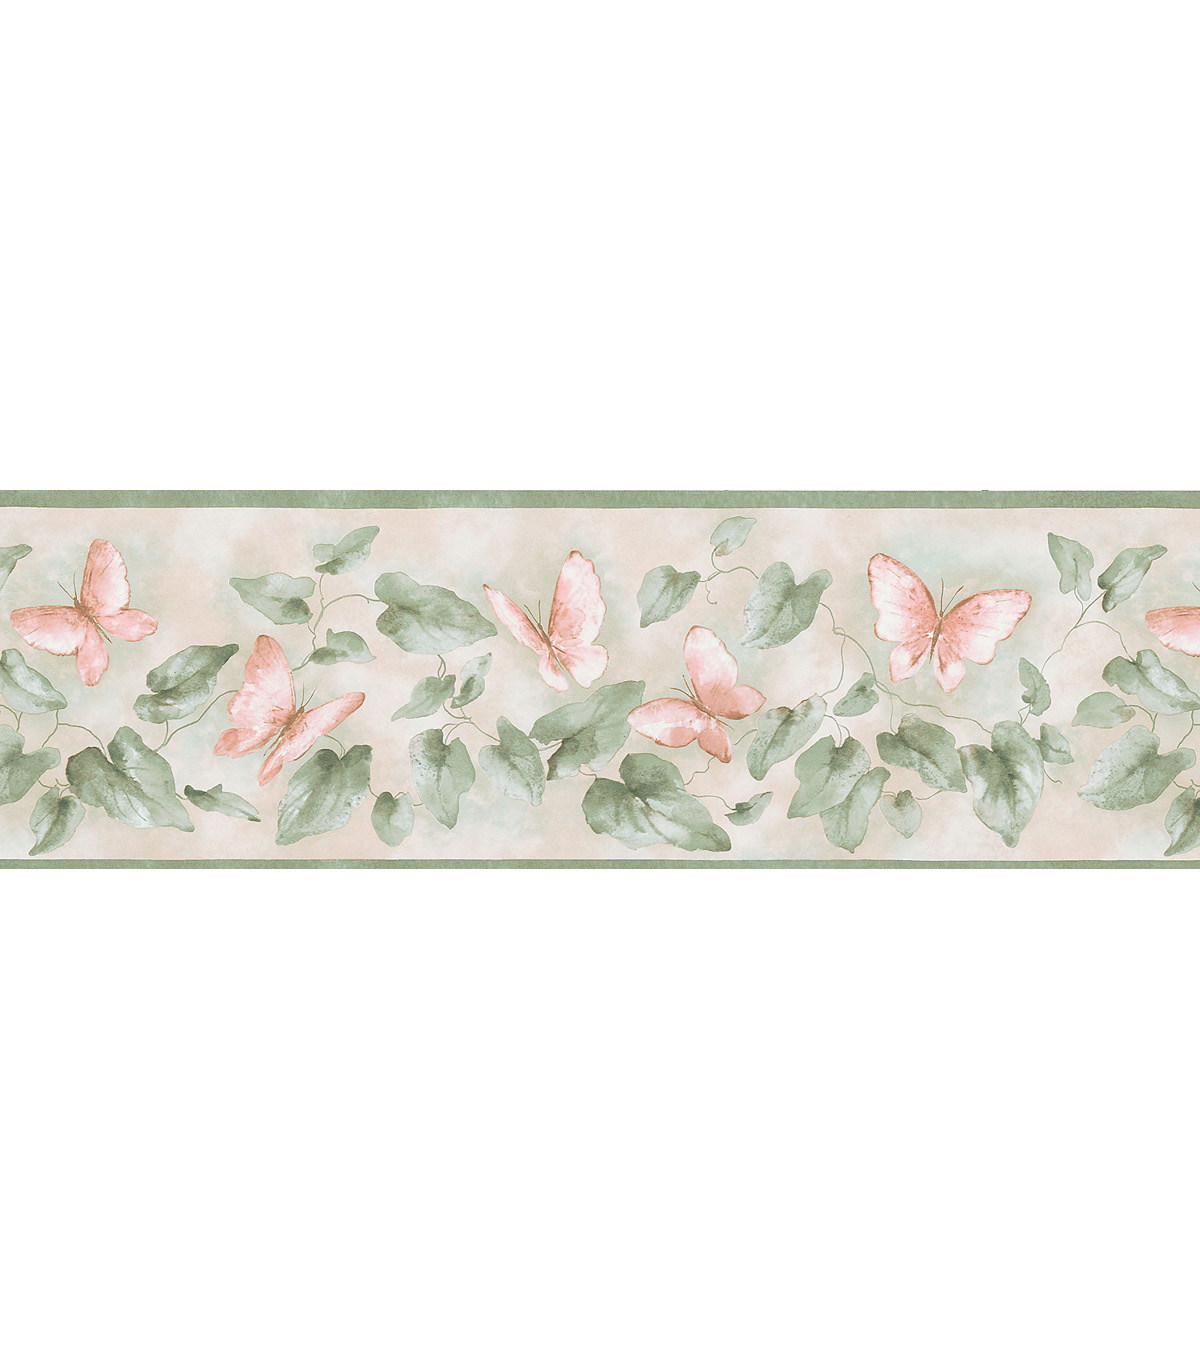 Butterfly Lily Pad Wallpaper Border, Green Sample